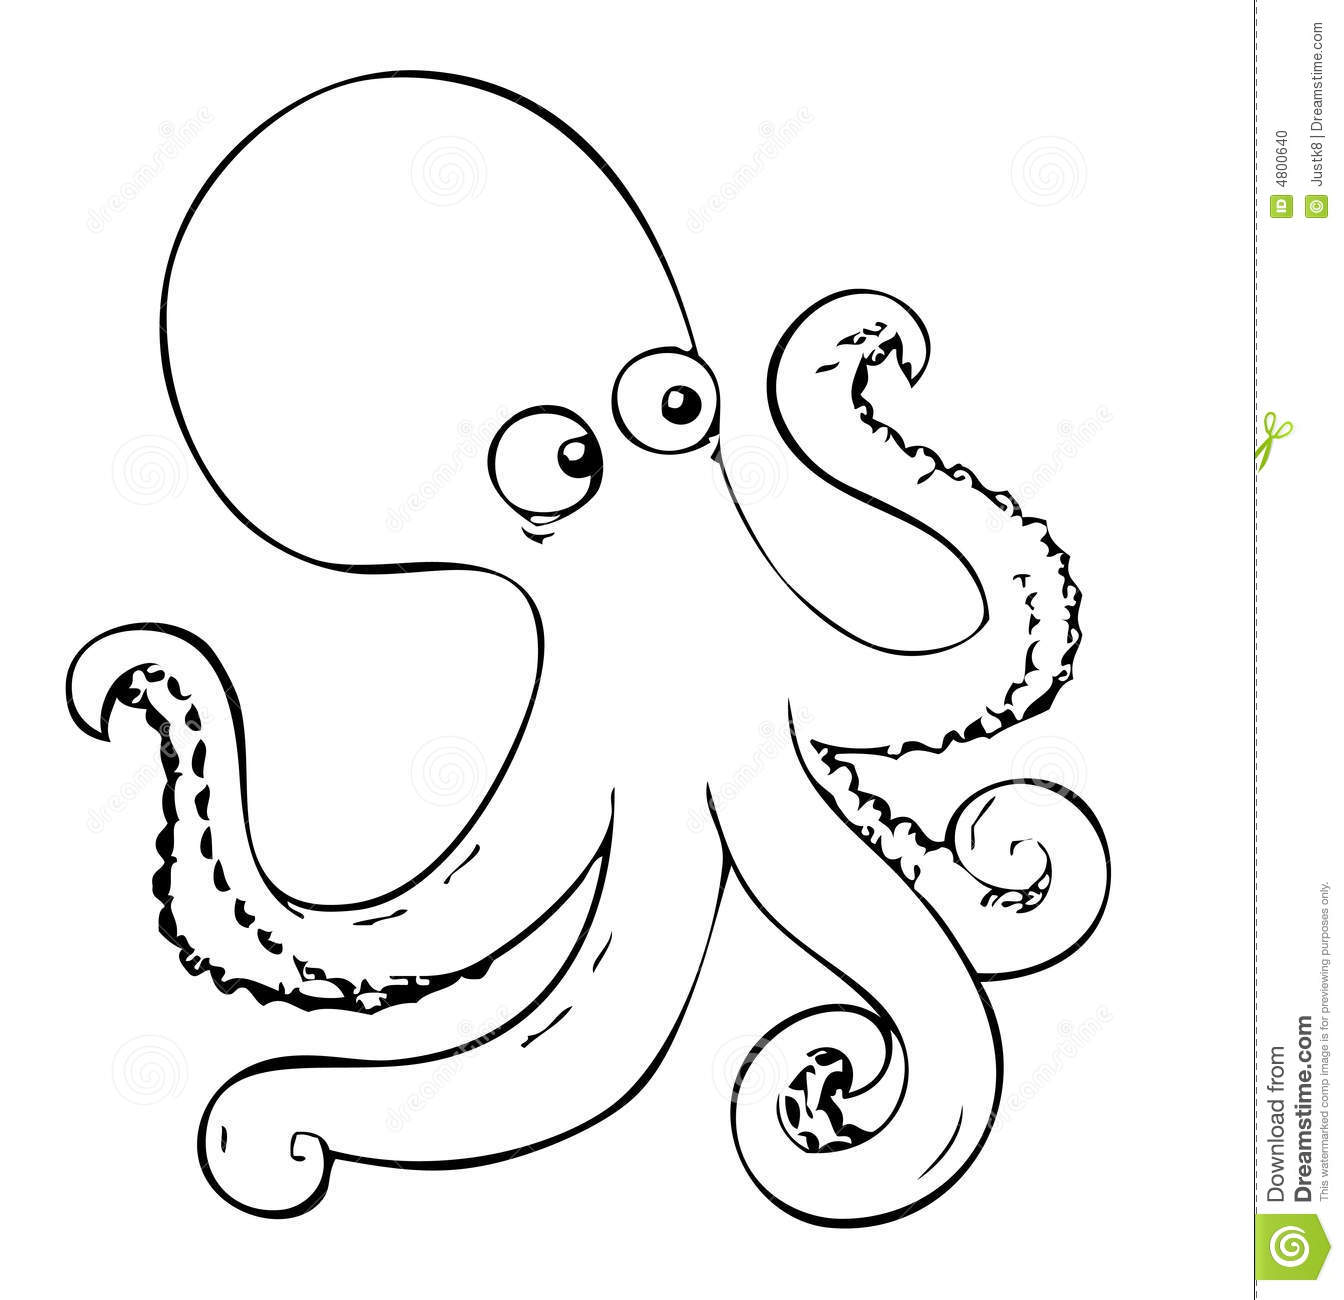 likewise  besides Cute Octopus Coloring Pages 01 in addition 1463711 193164487541814 349749647 n additionally Hydra dragons 21763271 806 867 furthermore  besides  in addition OR 767 3 moreover 587d105778baebb5135df748f2f31a2d additionally finding dory k215 33ag pub pub16 213 besides coloring book octopus 4800640. on ocean squid animals coloring pages book